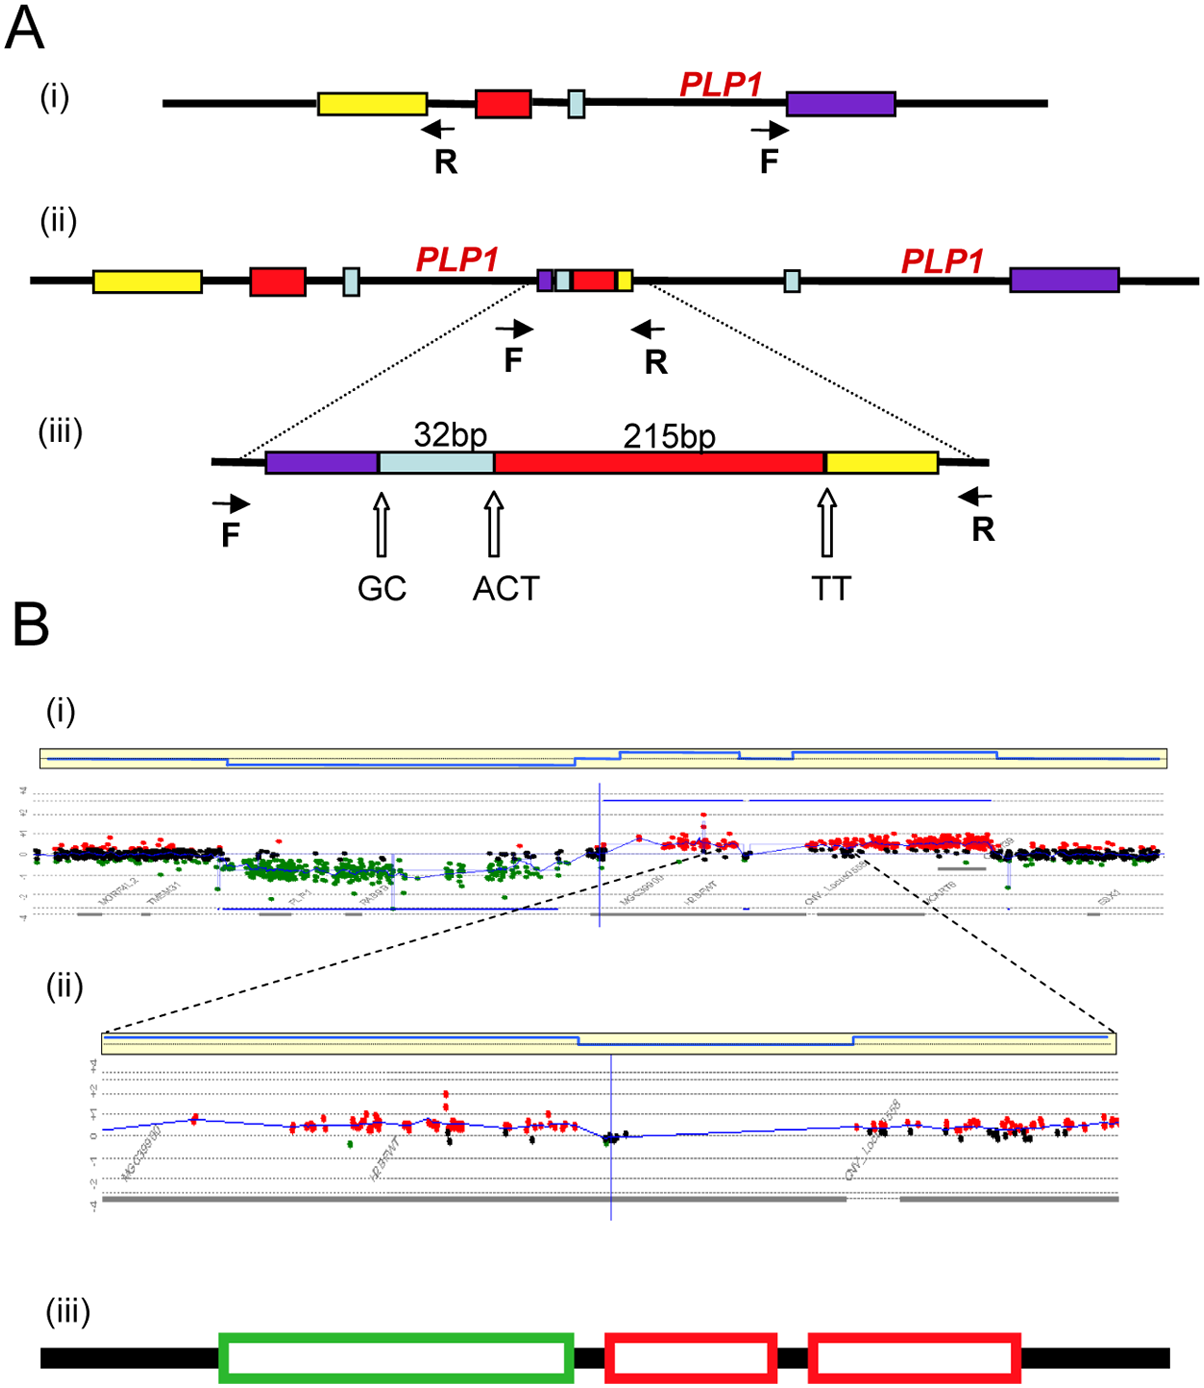 Complex rearrangements involving <i>PLP1</i> detected by junction analysis (A) and oligonucleotide array comparative genomic hybridization analysis (B) <em class=&quot;ref&quot;>[22]</em>.